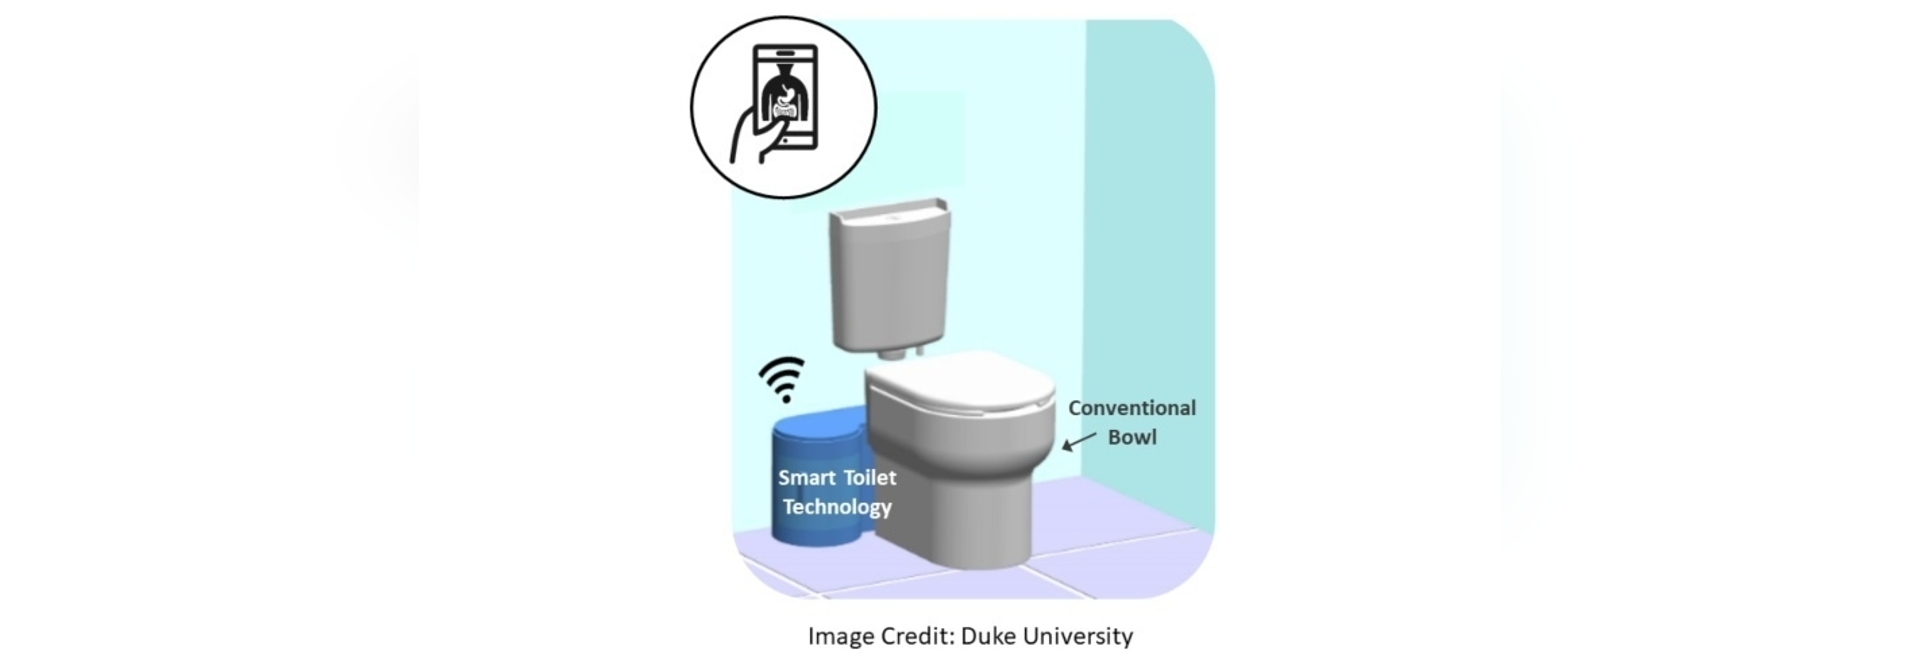 Disease Surveillance With Every Flush: Introducing the Smart Toilet